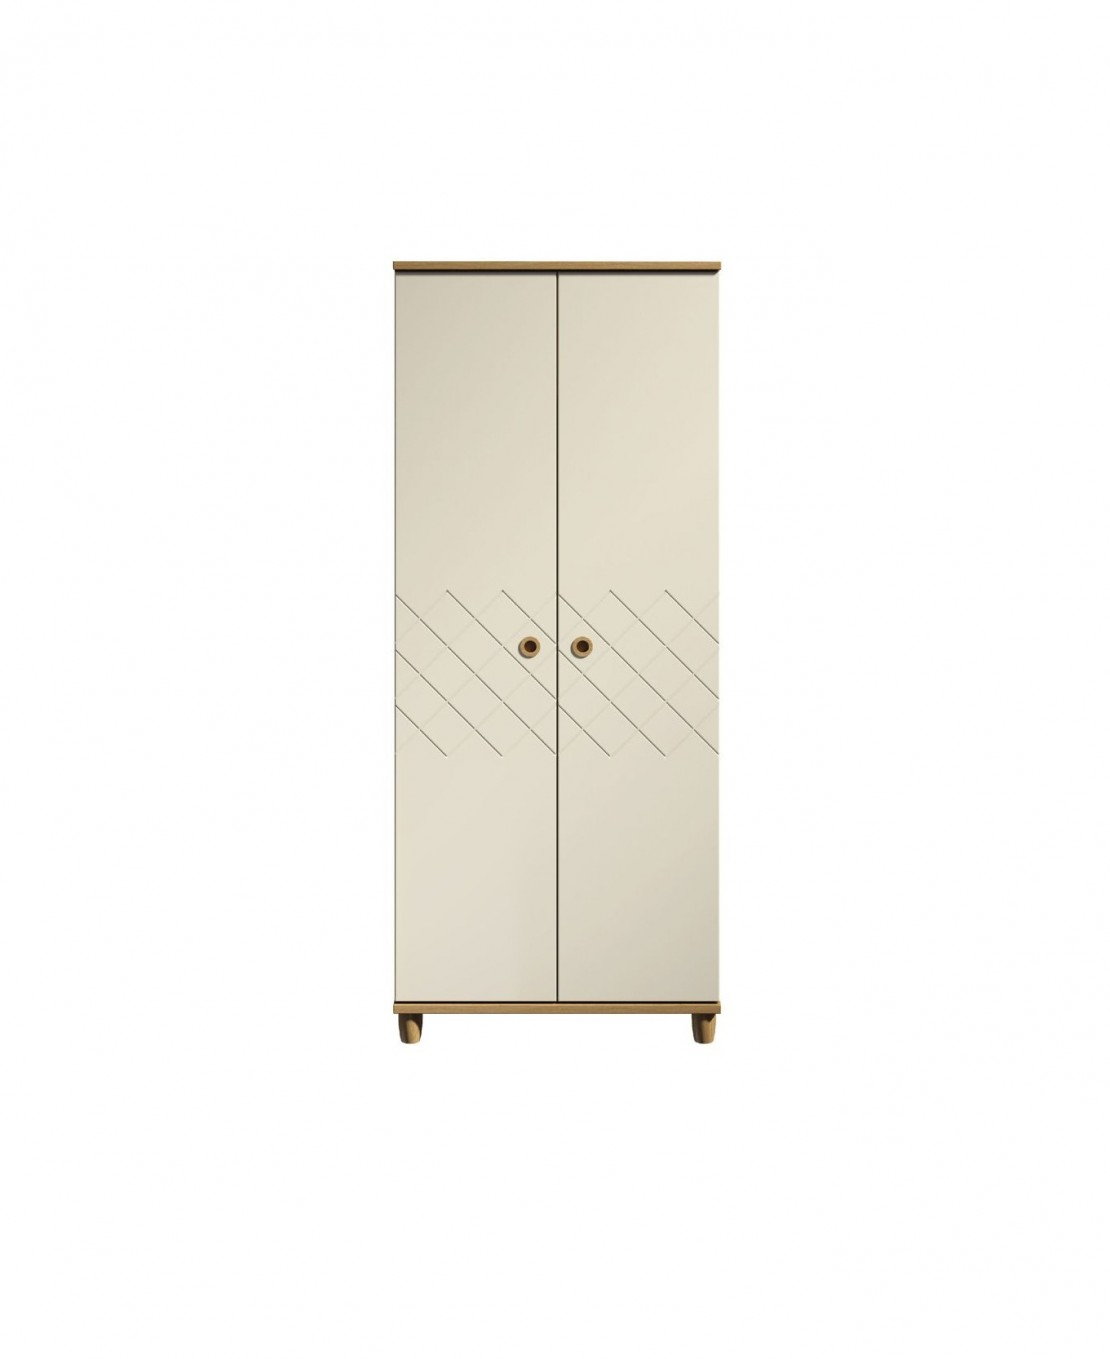 /_images/product-photos/kt-furniture-geo-2-door-robe-matt-alabaster-with-oak-carcase-a.jpg